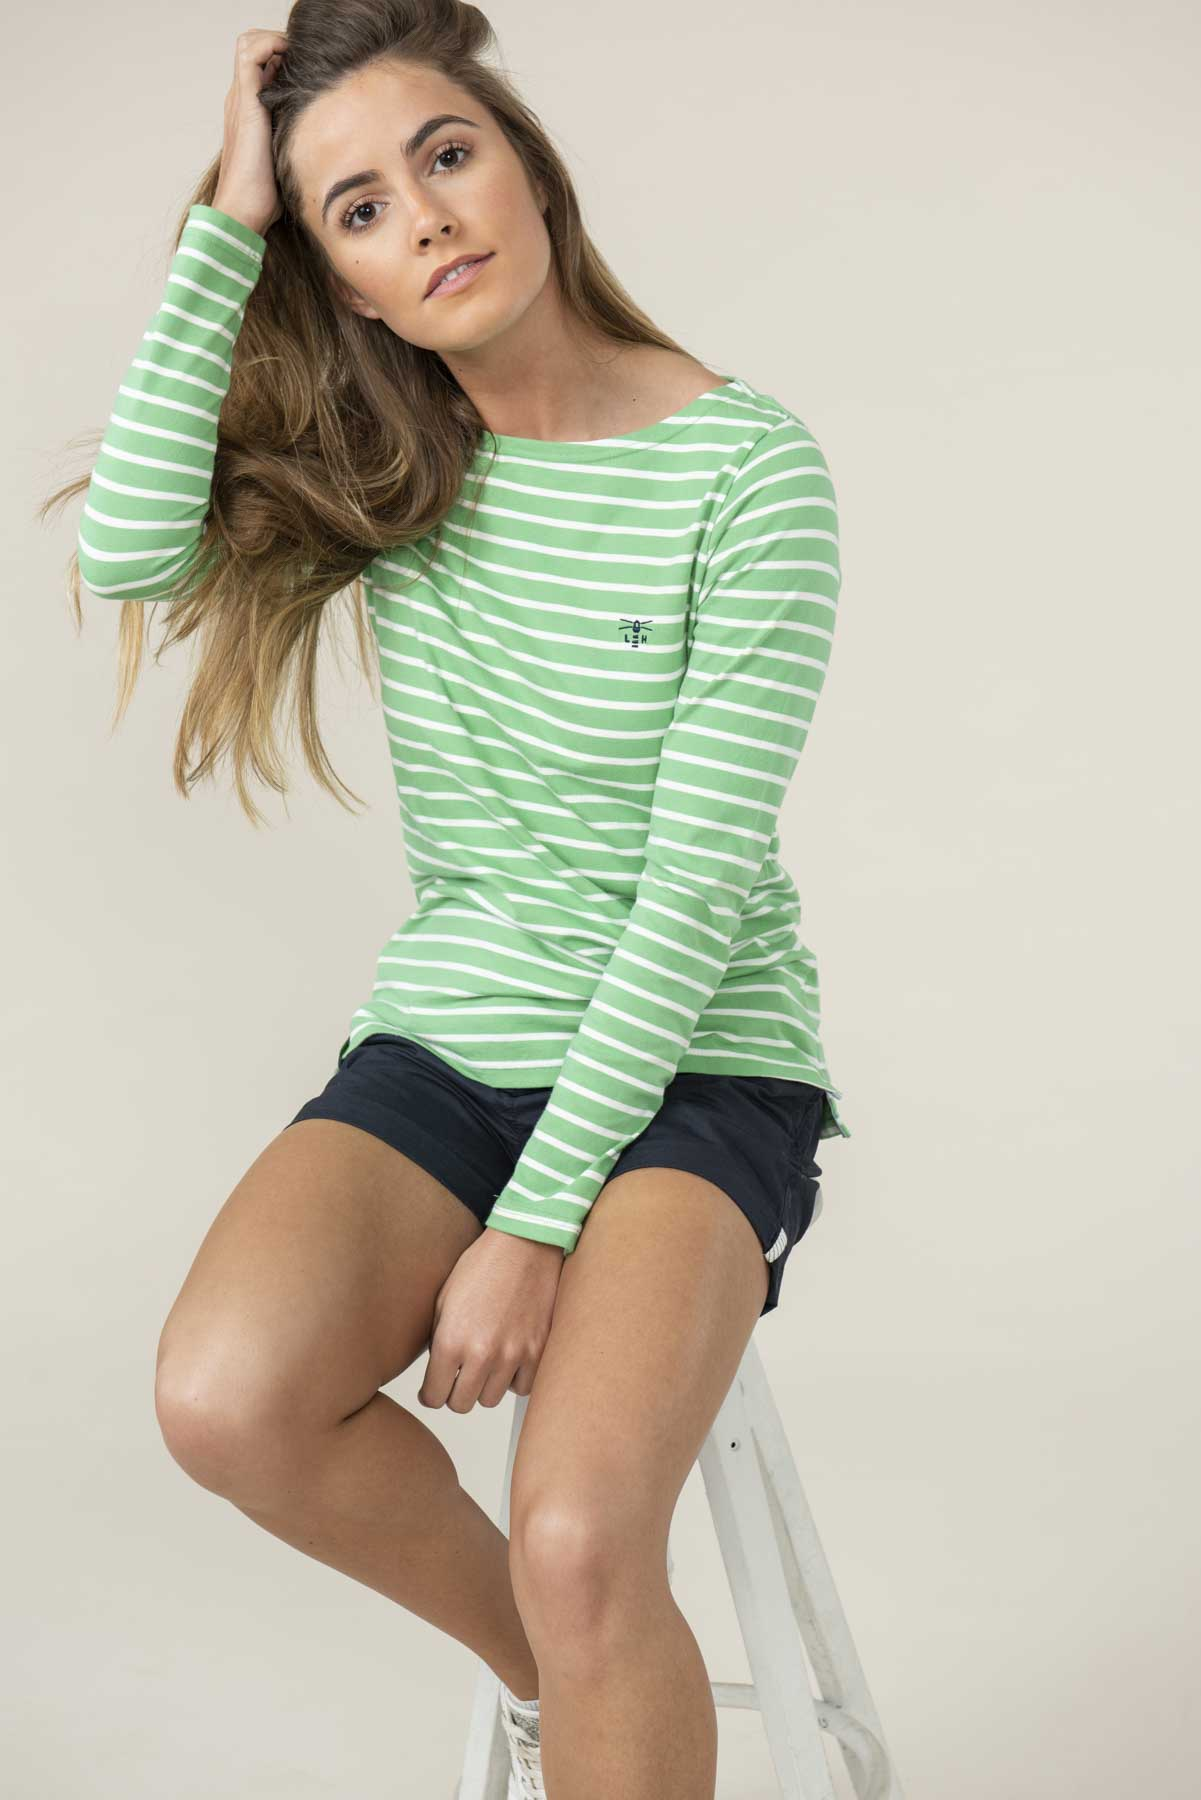 Causeway Women's Green Stripe Long Sleeve Top